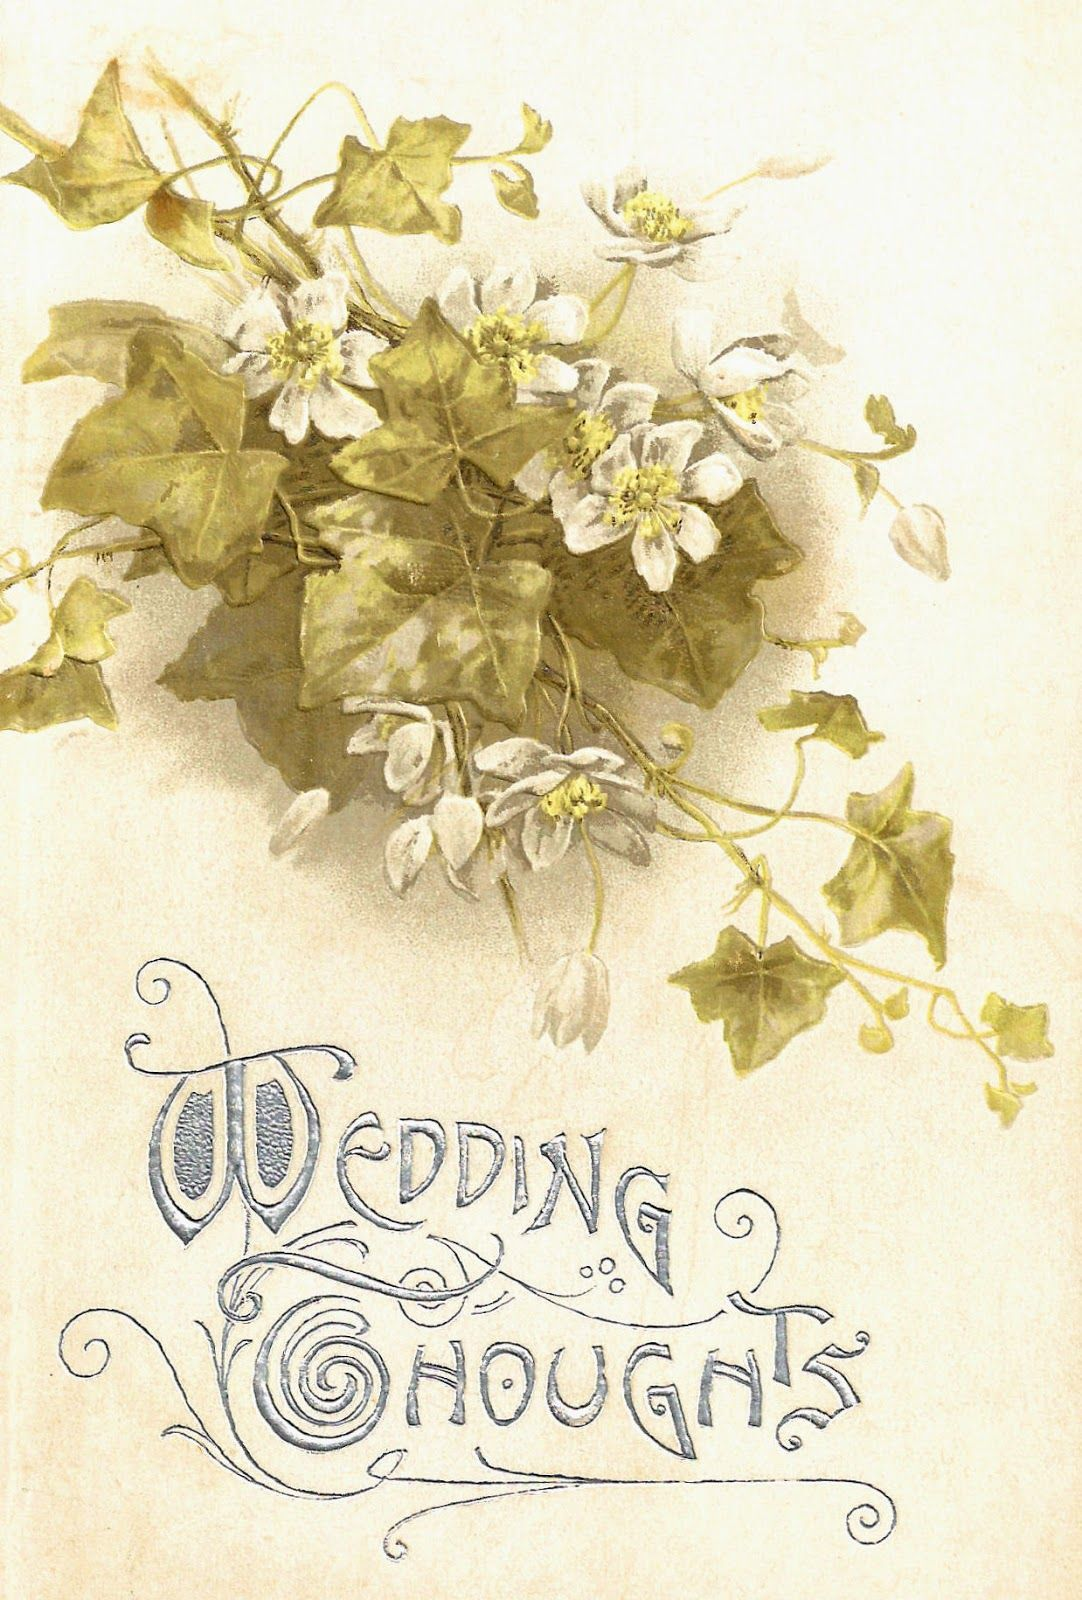 Free Vintage Flower Graphic Vintage Wedding Book Cover With Flowers